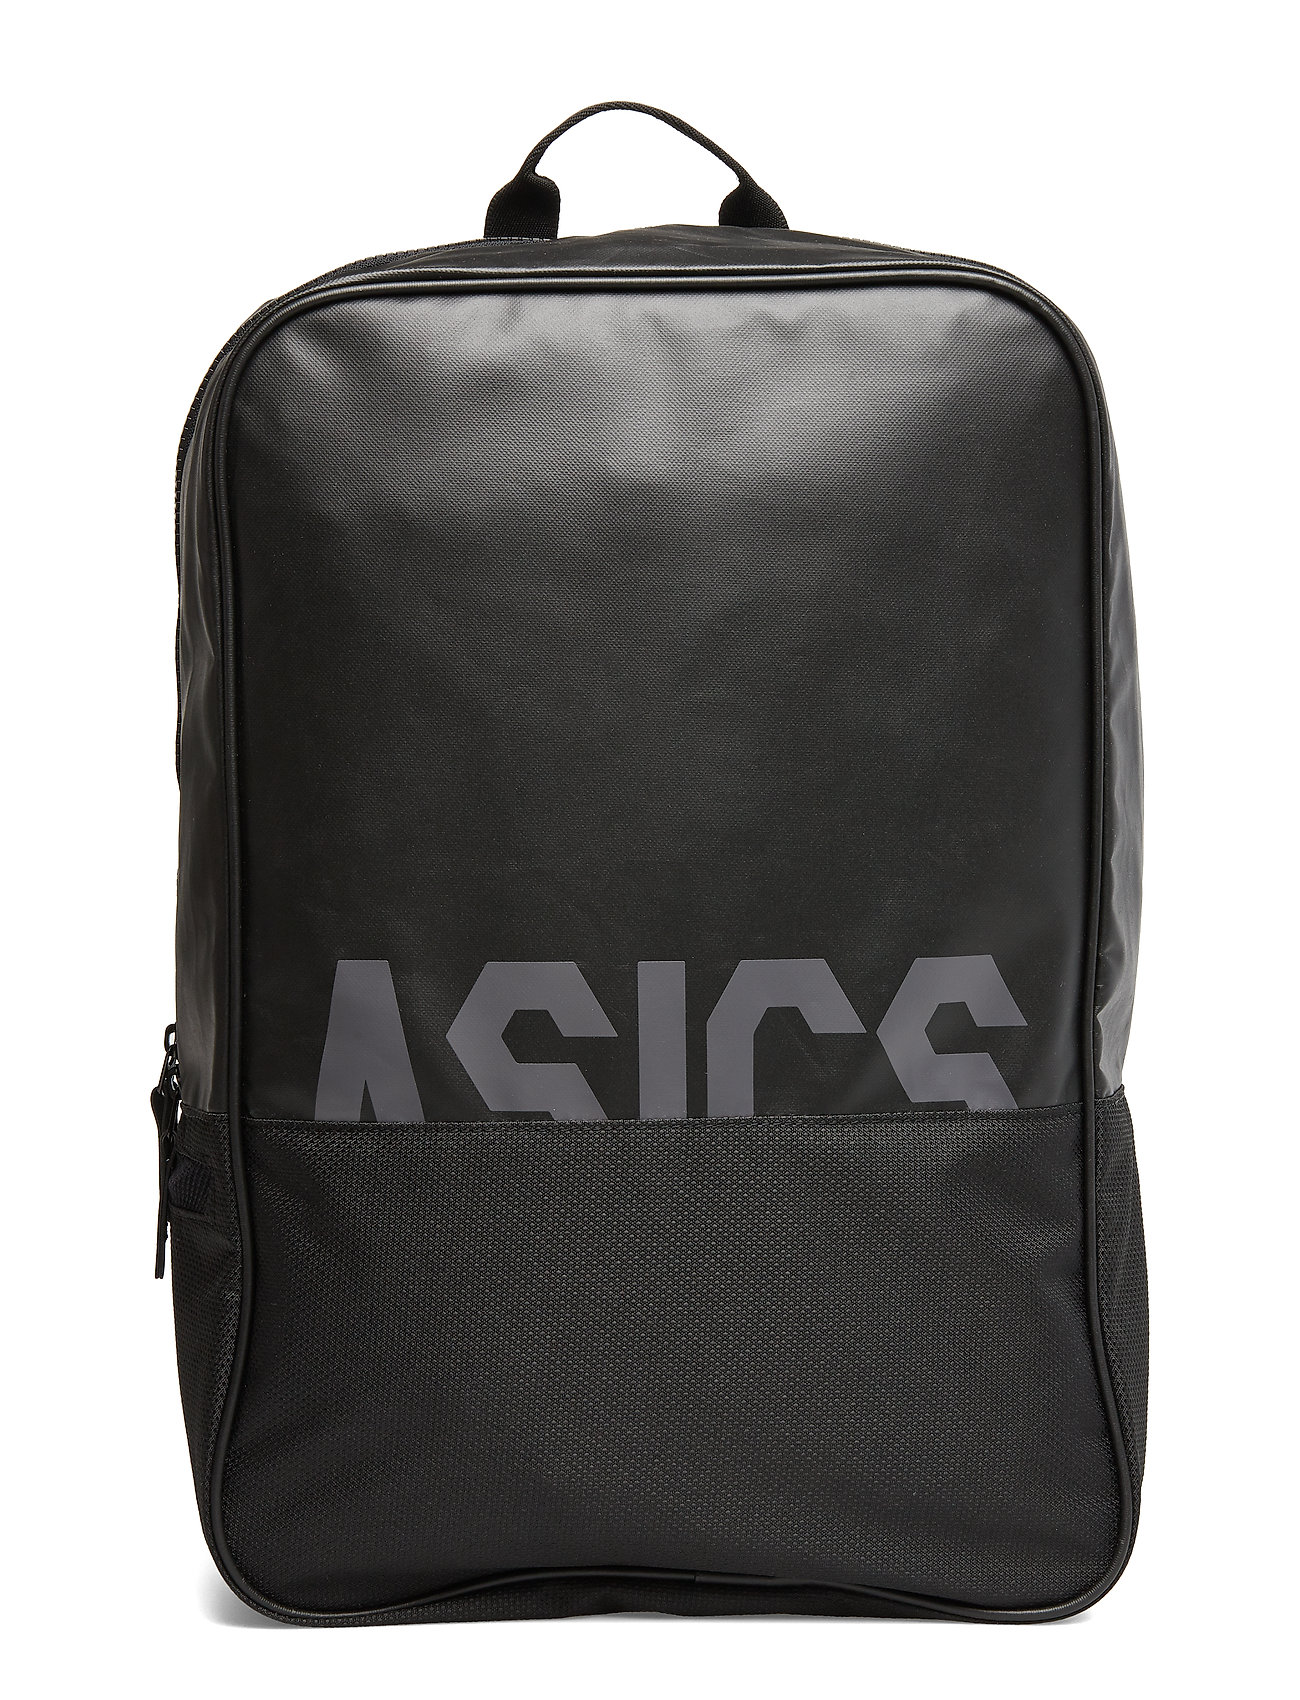 Core Tr Core BlackAsics Tr Backpackperformance Core Backpackperformance Tr Backpackperformance BlackAsics 9EDH2I